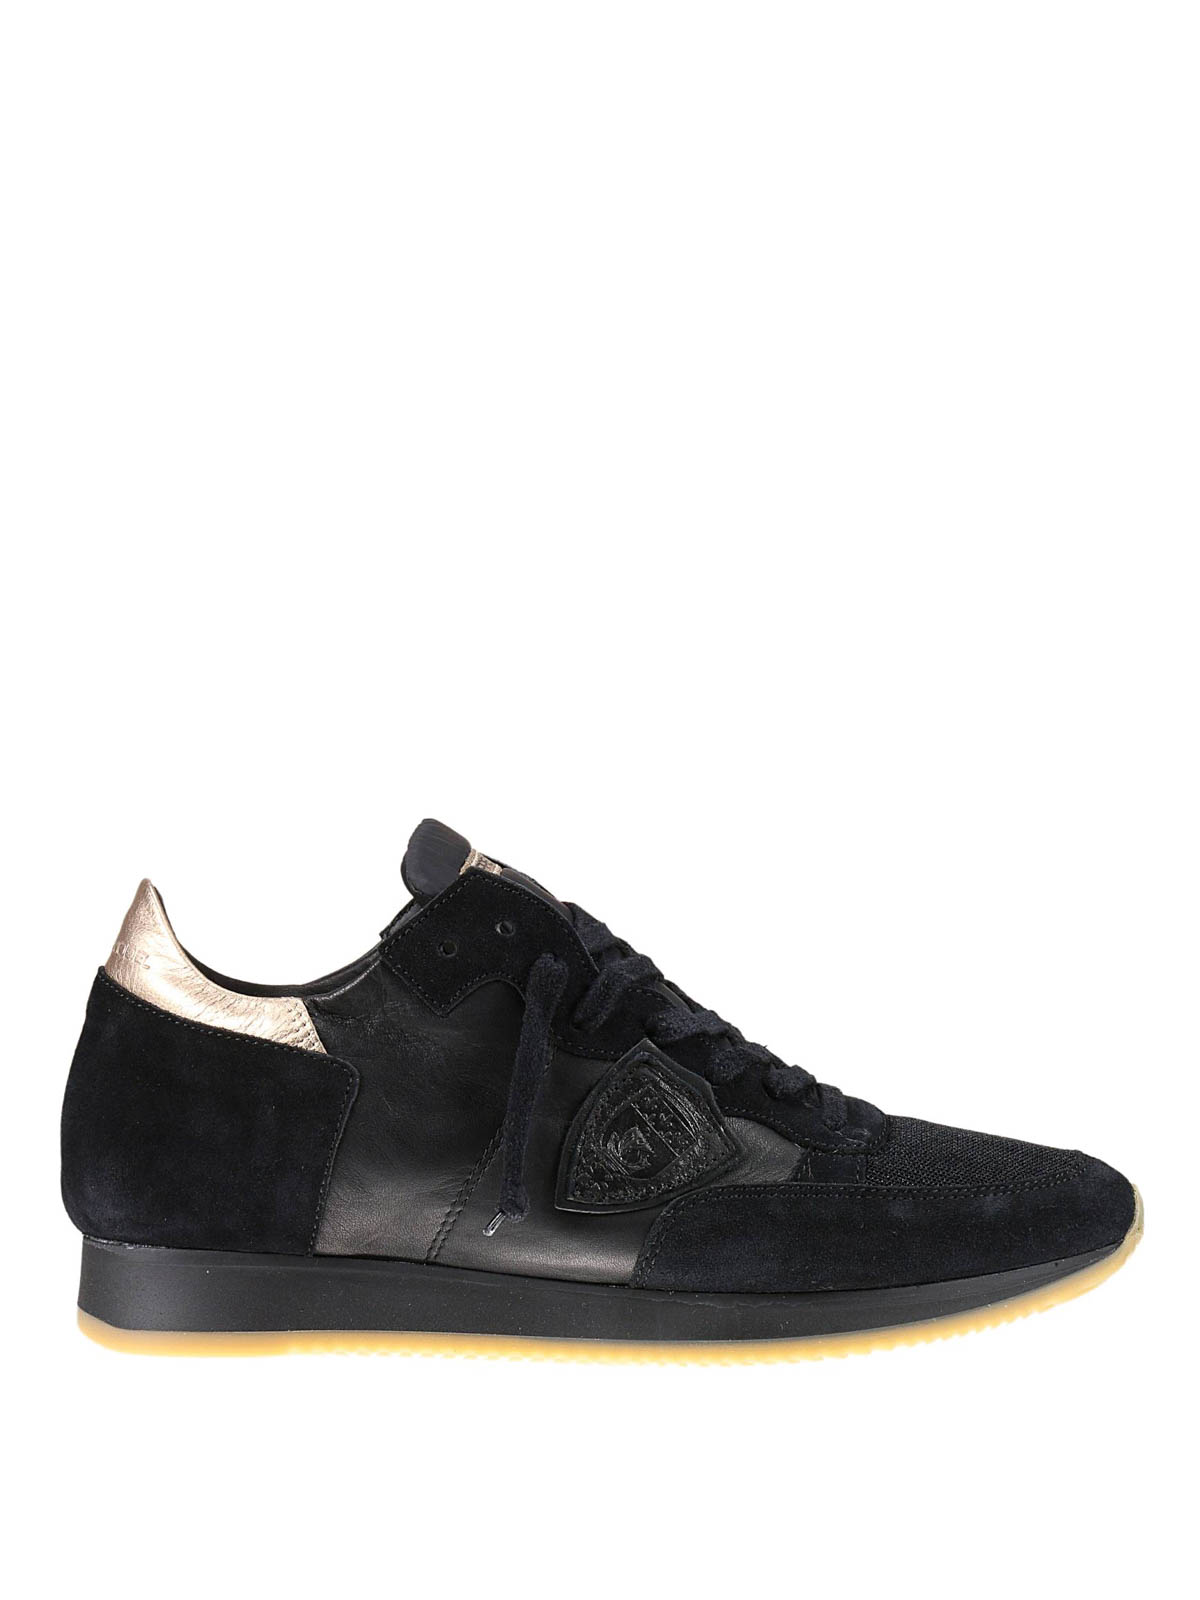 leather and suede tropez sneaker by philippe model trainers ikrix. Black Bedroom Furniture Sets. Home Design Ideas